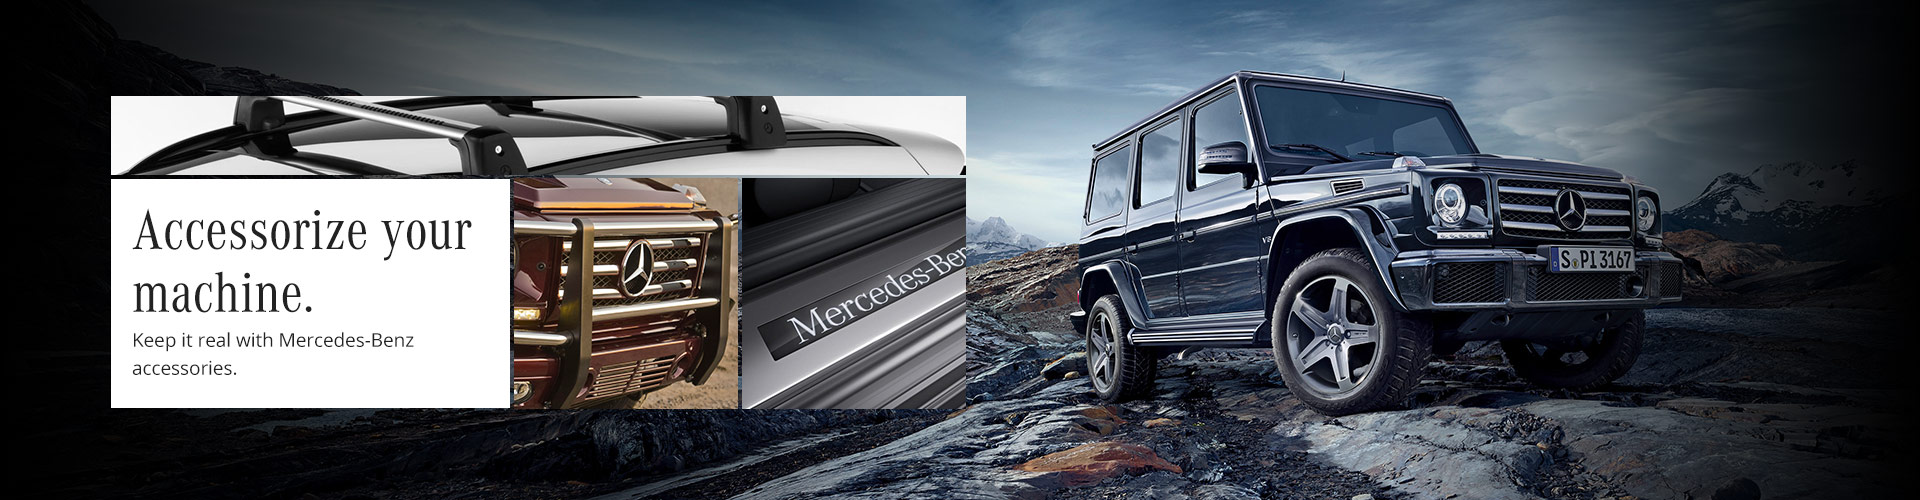 OEM Mercedes-Benz Accessories